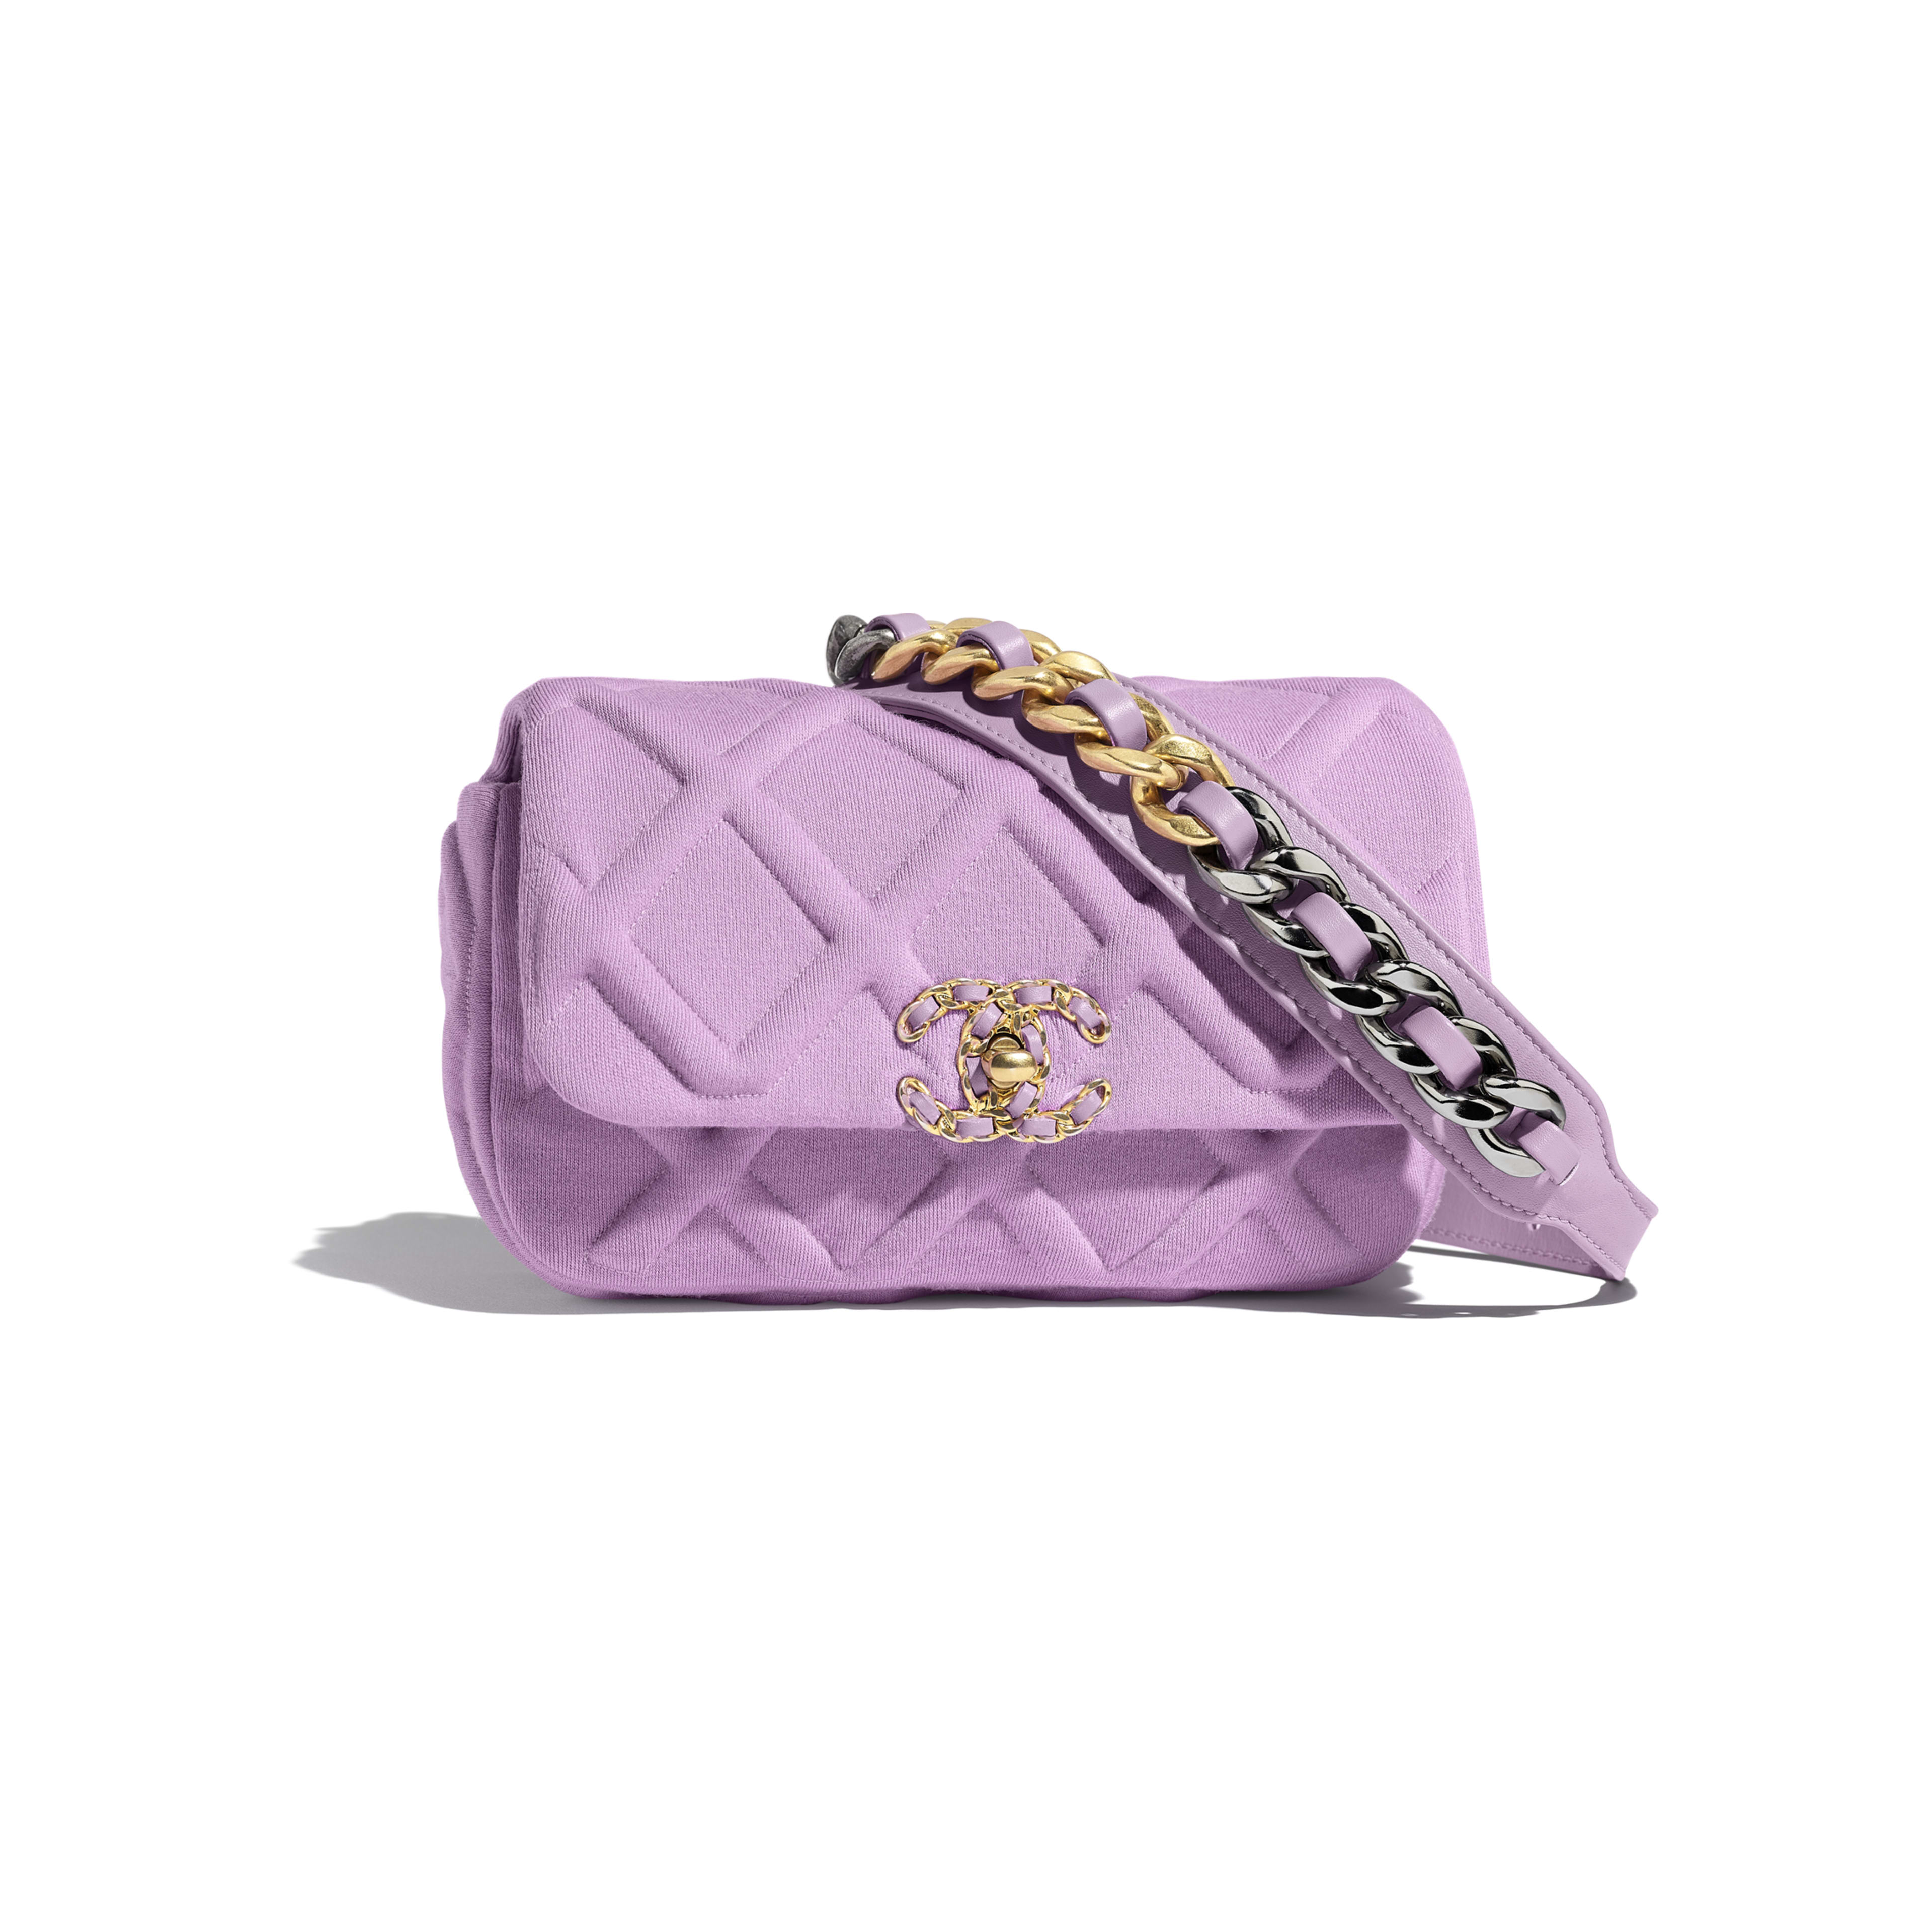 CHANEL 19 Waist Bag - Mauve - Jersey, Gold-Tone, Silver-Tone & Ruthenium-Finish Metal - Default view - see full sized version